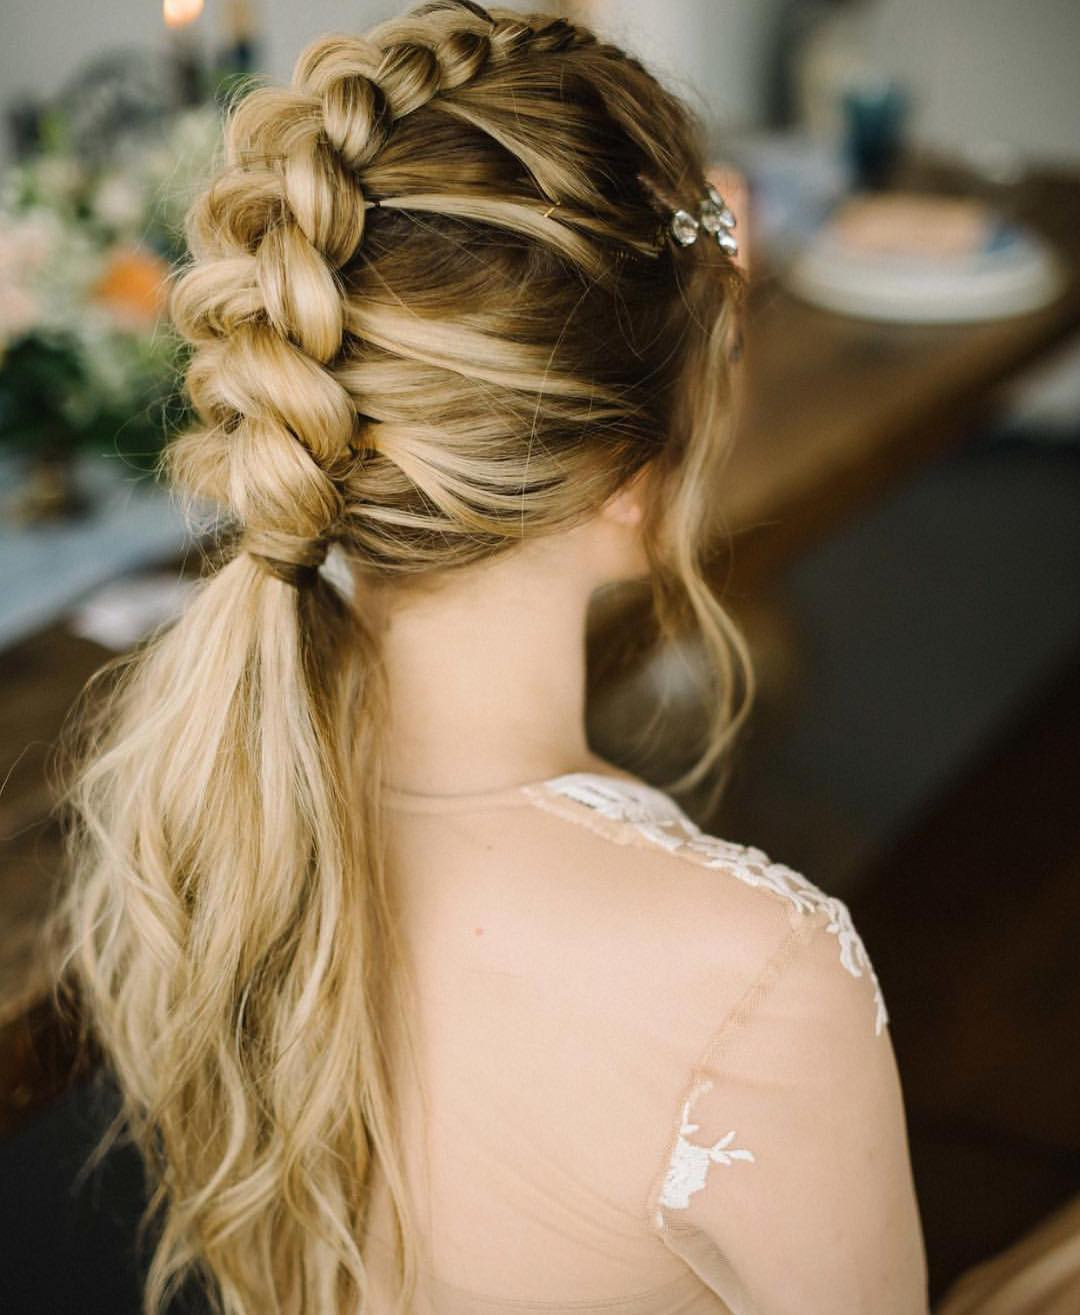 Wedding Hairstyles With Braids For Long Hair  10 Braided Hairstyles for Long Hair Weddings Festivals